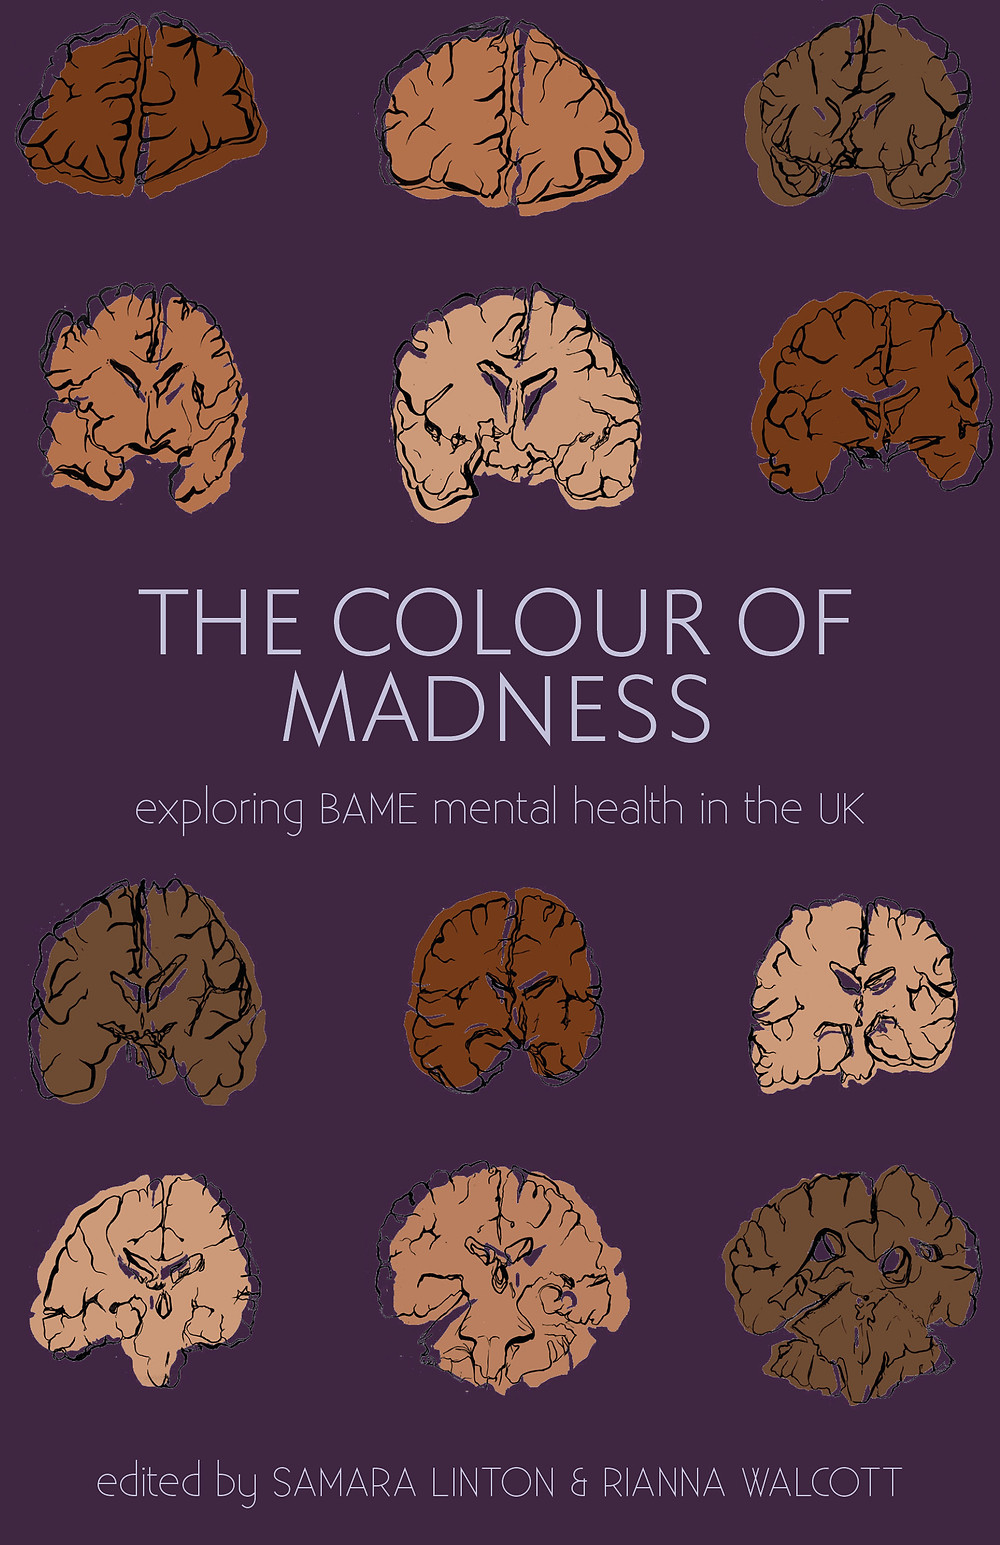 Cover of 'The Colour of Madness' (purple with brains in shades of brown)